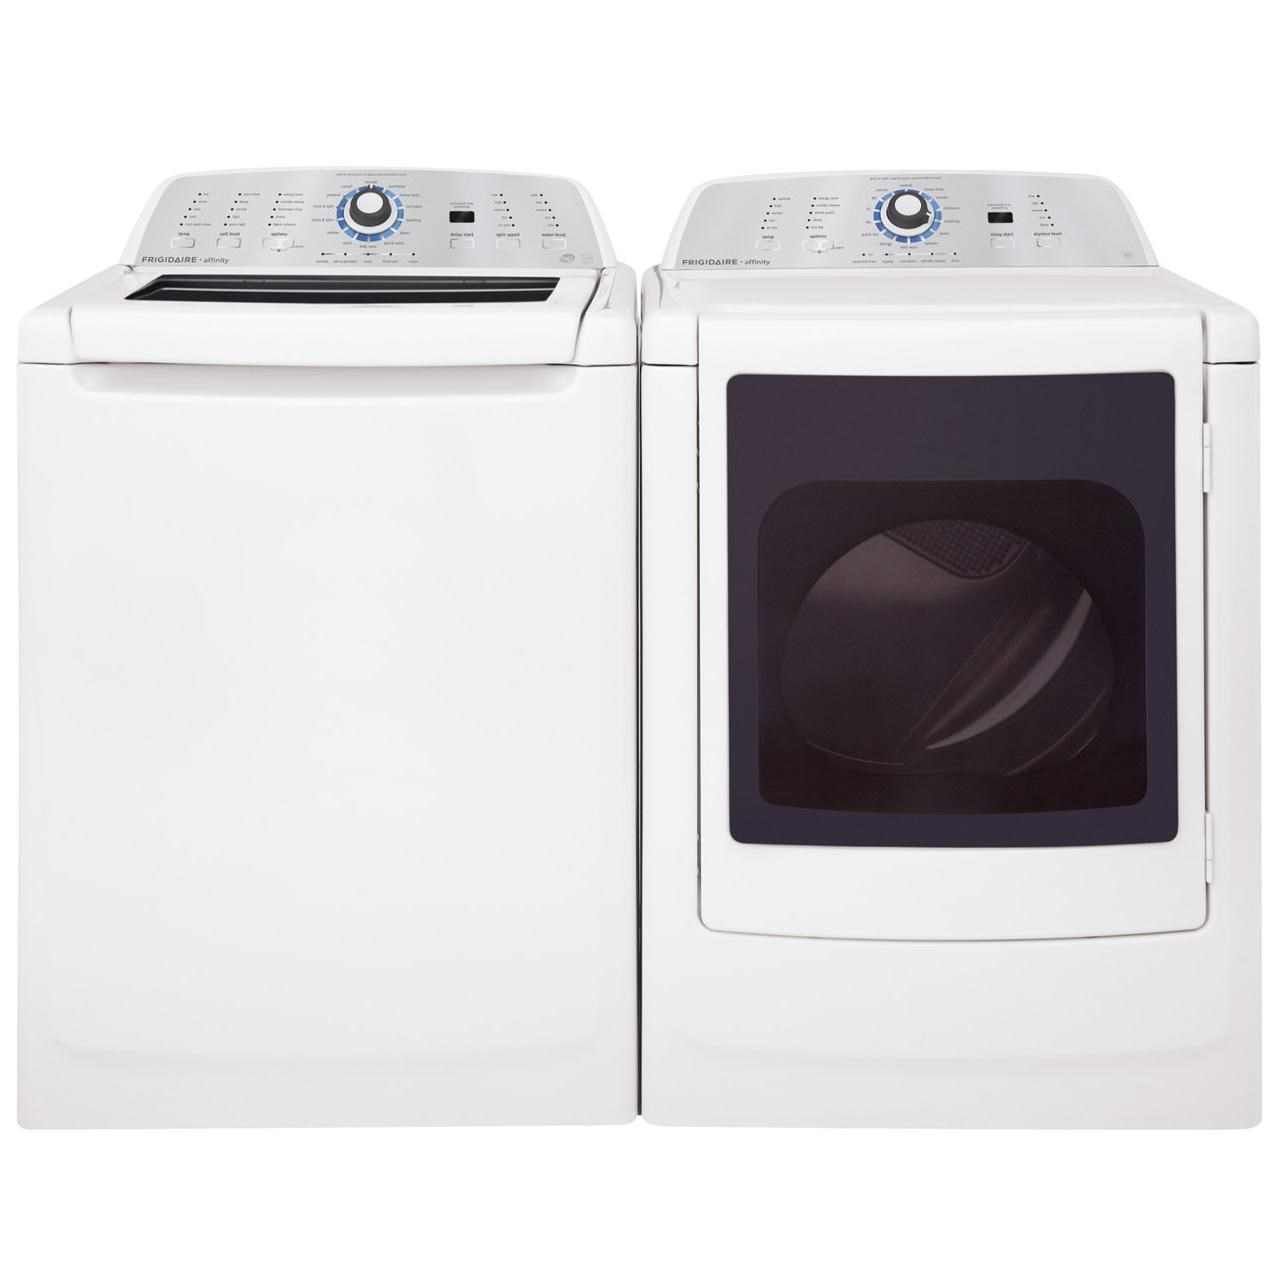 frigidaire washer and dryer set energy star 34 cu ft topload